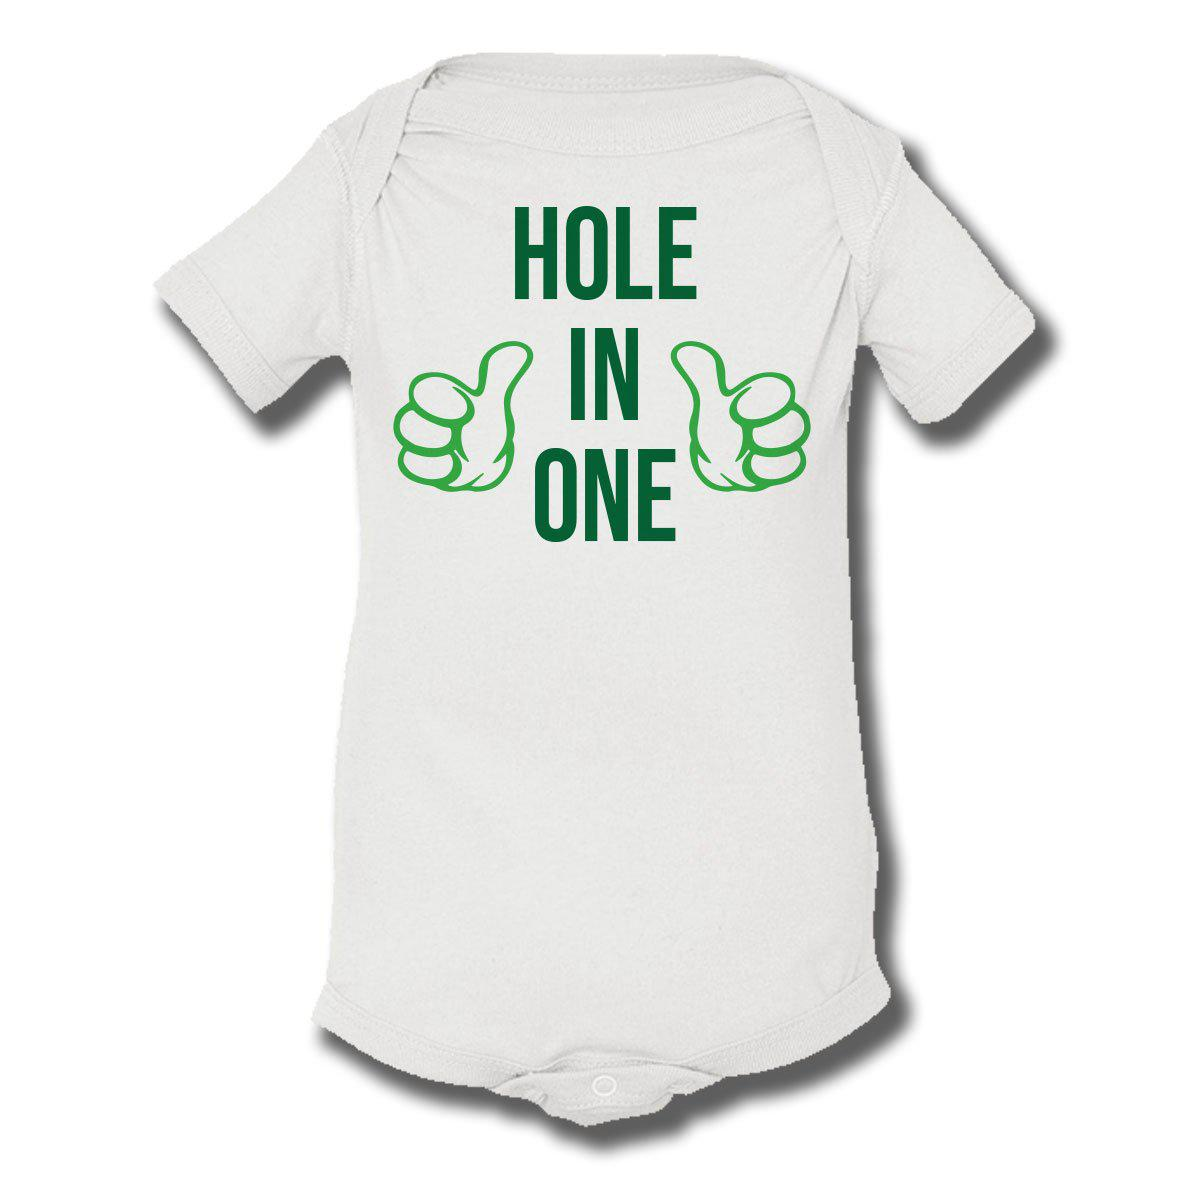 Hole in One - Baby/Toddler